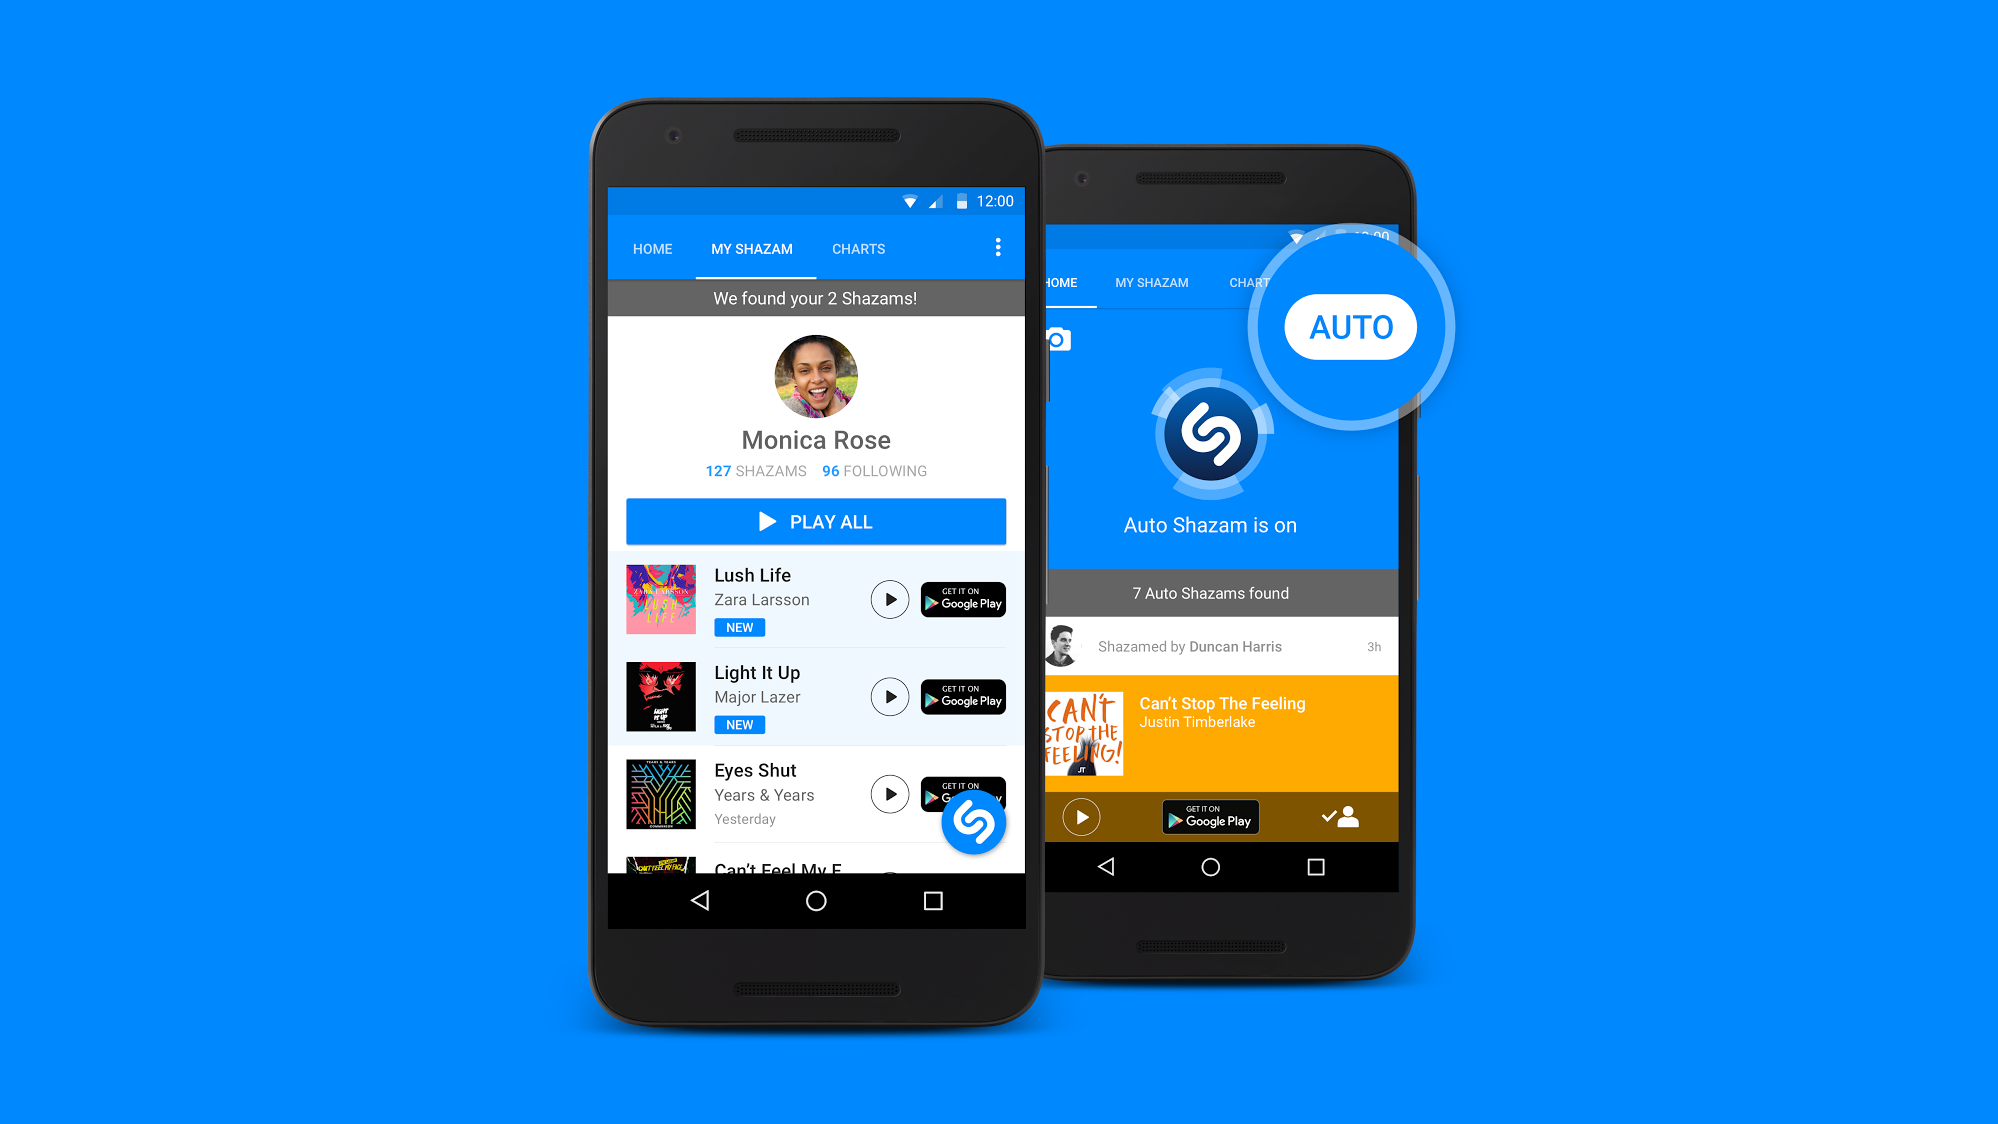 Shazam Can Now Automatically Identify Songs in the Background